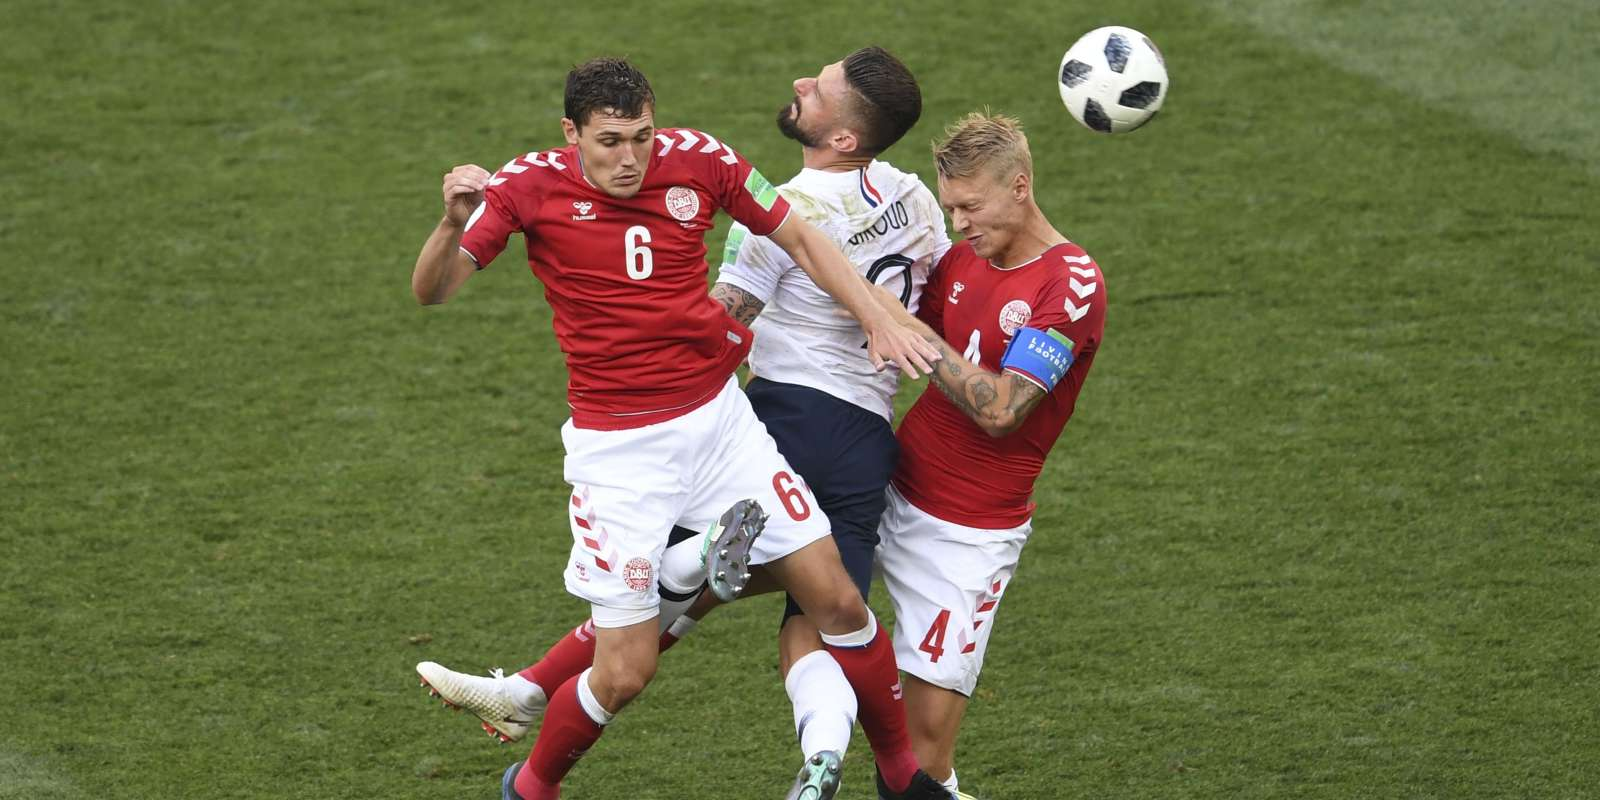 France's forward Olivier Giroud (C) vies for the header with Denmark's defender Andreas Christensen (L) and Denmark's defender Simon Kjaer during the Russia 2018 World Cup Group C football match between Denmark and France at the Luzhniki Stadium in Moscow on June 26, 2018. RESTRICTED TO EDITORIAL USE - NO MOBILE PUSH ALERTS/DOWNLOADS / AFP / YURI CORTEZ / RESTRICTED TO EDITORIAL USE - NO MOBILE PUSH ALERTS/DOWNLOADS